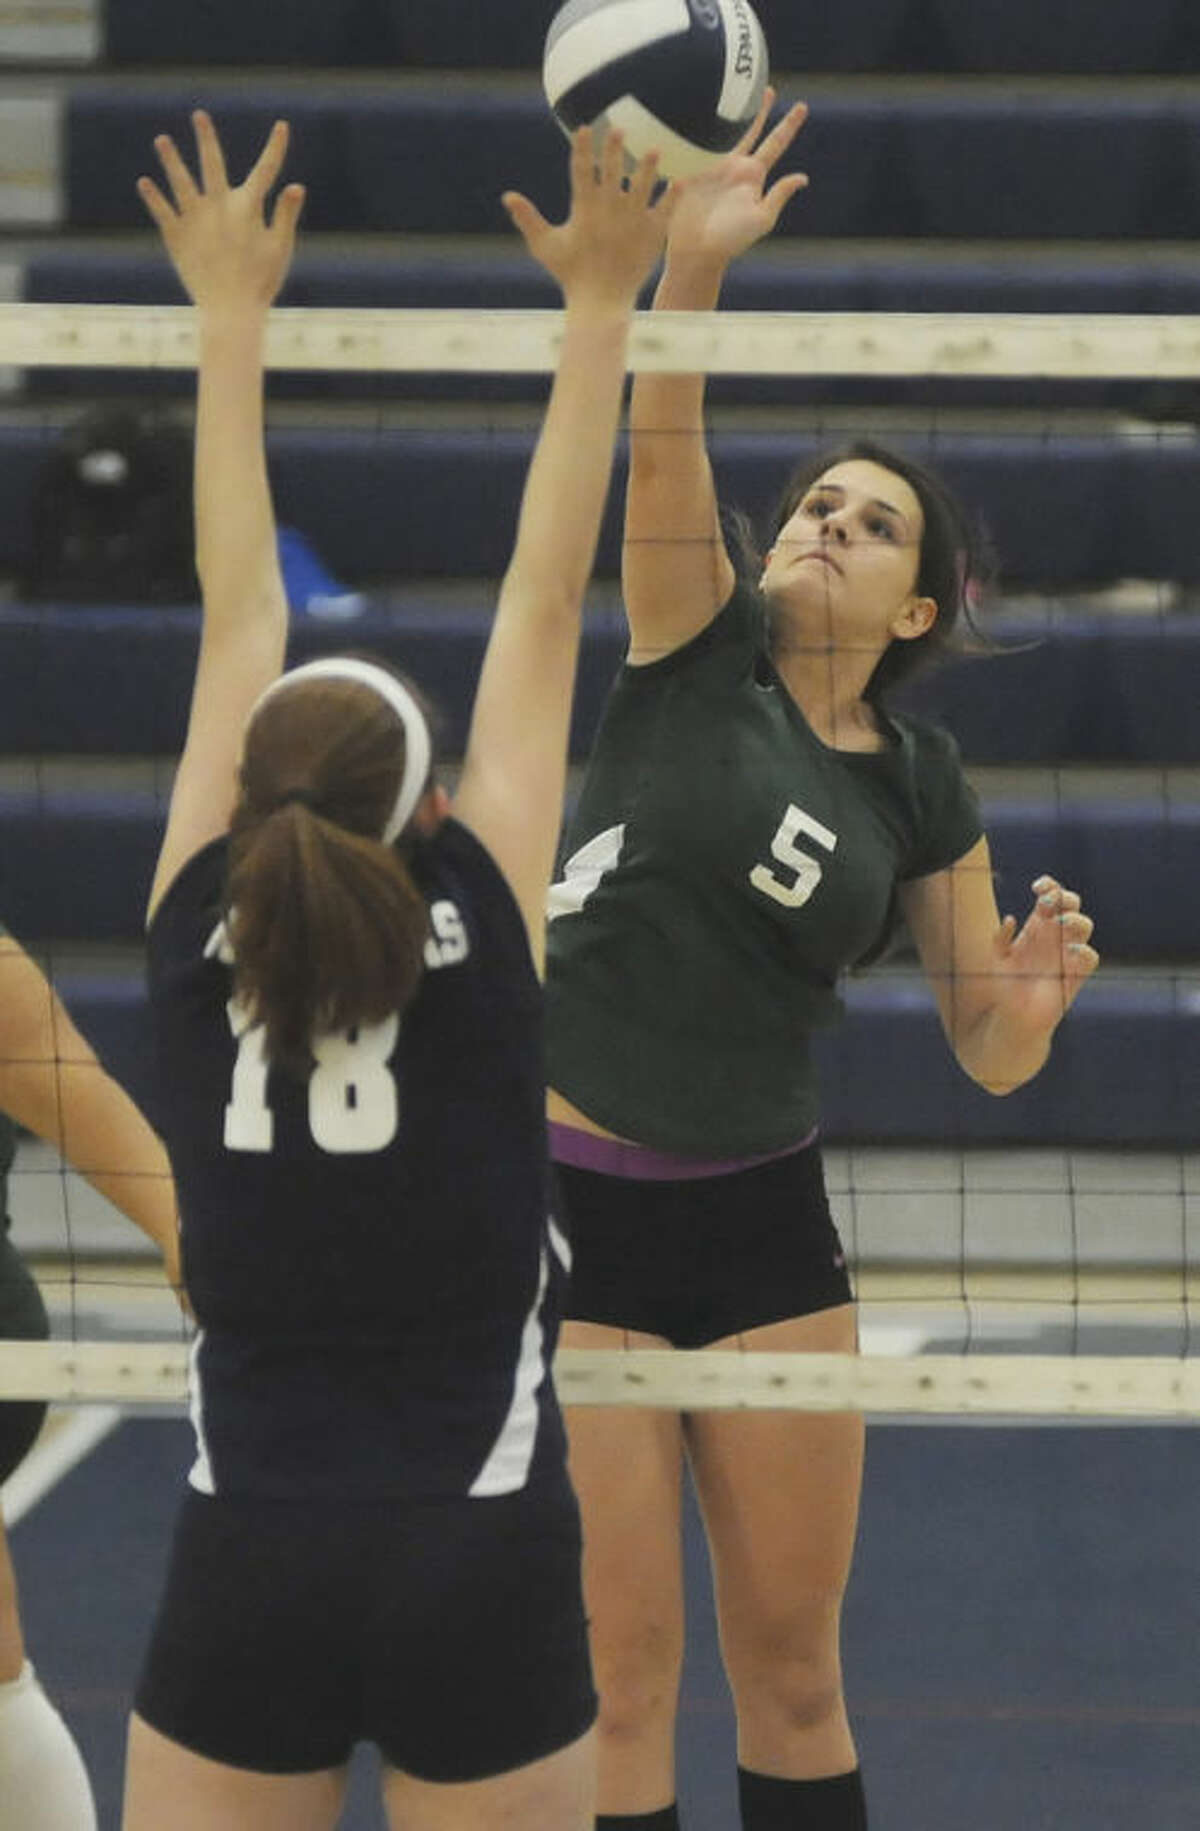 Hour photo/John Nash Norwalk's Alex Weber (5) sends down a shot against the defense of Wilton's Natalie Smith during Monday's FCIAC volleyball game at the Zeoli Field House in Wilton. Norwalk won the match 3-1.